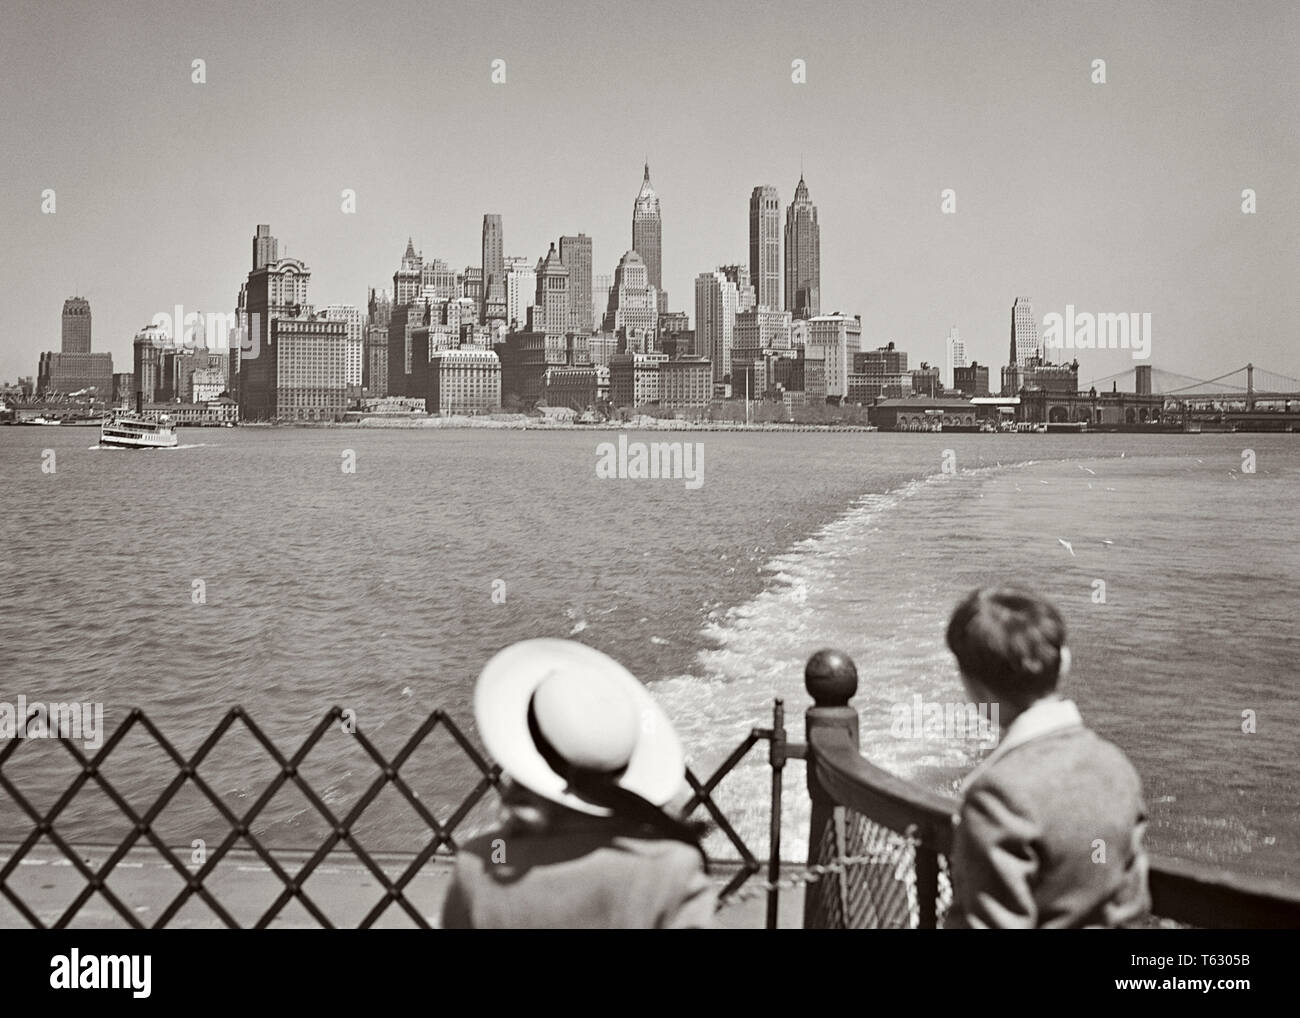 1950s YOUNG GIRL AND BOY RIDING ON STATEN ISLAND FERRY BOAT VIEWING SKYLINE OF LOWER MANHATTAN AND NEW YORK HARBOR NYC USA - r1649 HAR001 HARS HISTORY CELEBRATION FEMALES BROTHERS UNITED STATES COPY SPACE HALF-LENGTH LOWER SCENIC INSPIRATION UNITED STATES OF AMERICA MALES SIBLINGS CONFIDENCE SISTERS TRANSPORTATION B&W HARBOR FREEDOM WIDE ANGLE VISION DREAMS HEAD AND SHOULDERS ADVENTURE STRENGTH AND EXCITEMENT EXTERIOR LOOKING BACK OF ON NYC SIBLING CONCEPTUAL NEW YORK CITIES FERRY IMAGINATION STYLISH NEW YORK CITY JUVENILES TOGETHERNESS VIEWING BLACK AND WHITE CAUCASIAN ETHNICITY HAR001 - Stock Image